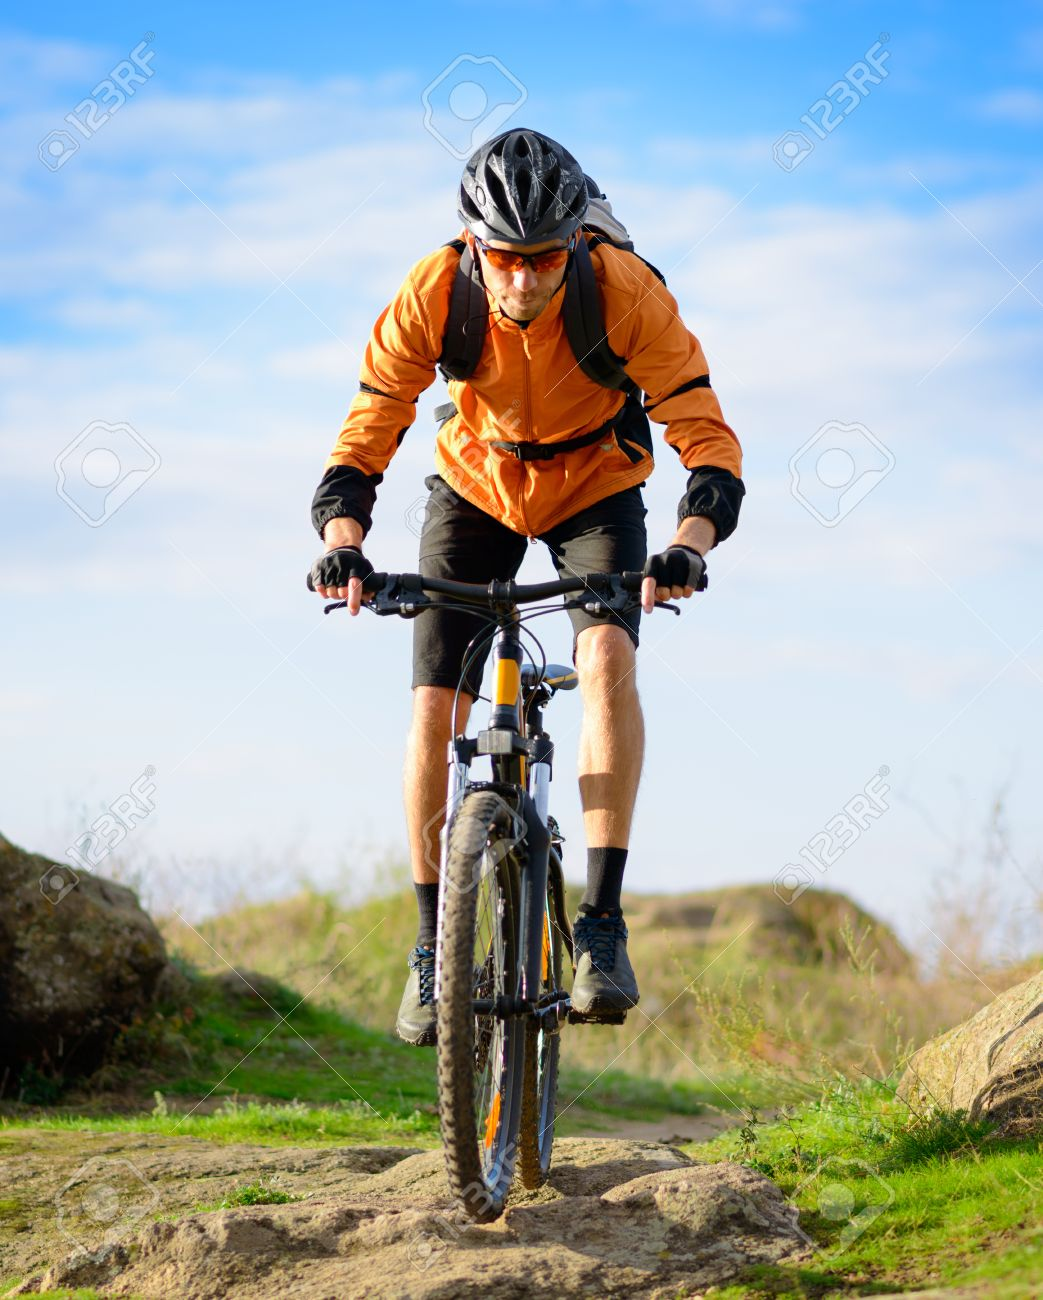 Cyclist Riding the Bike on the Beautiful Spring Mountain Trail - 25067634